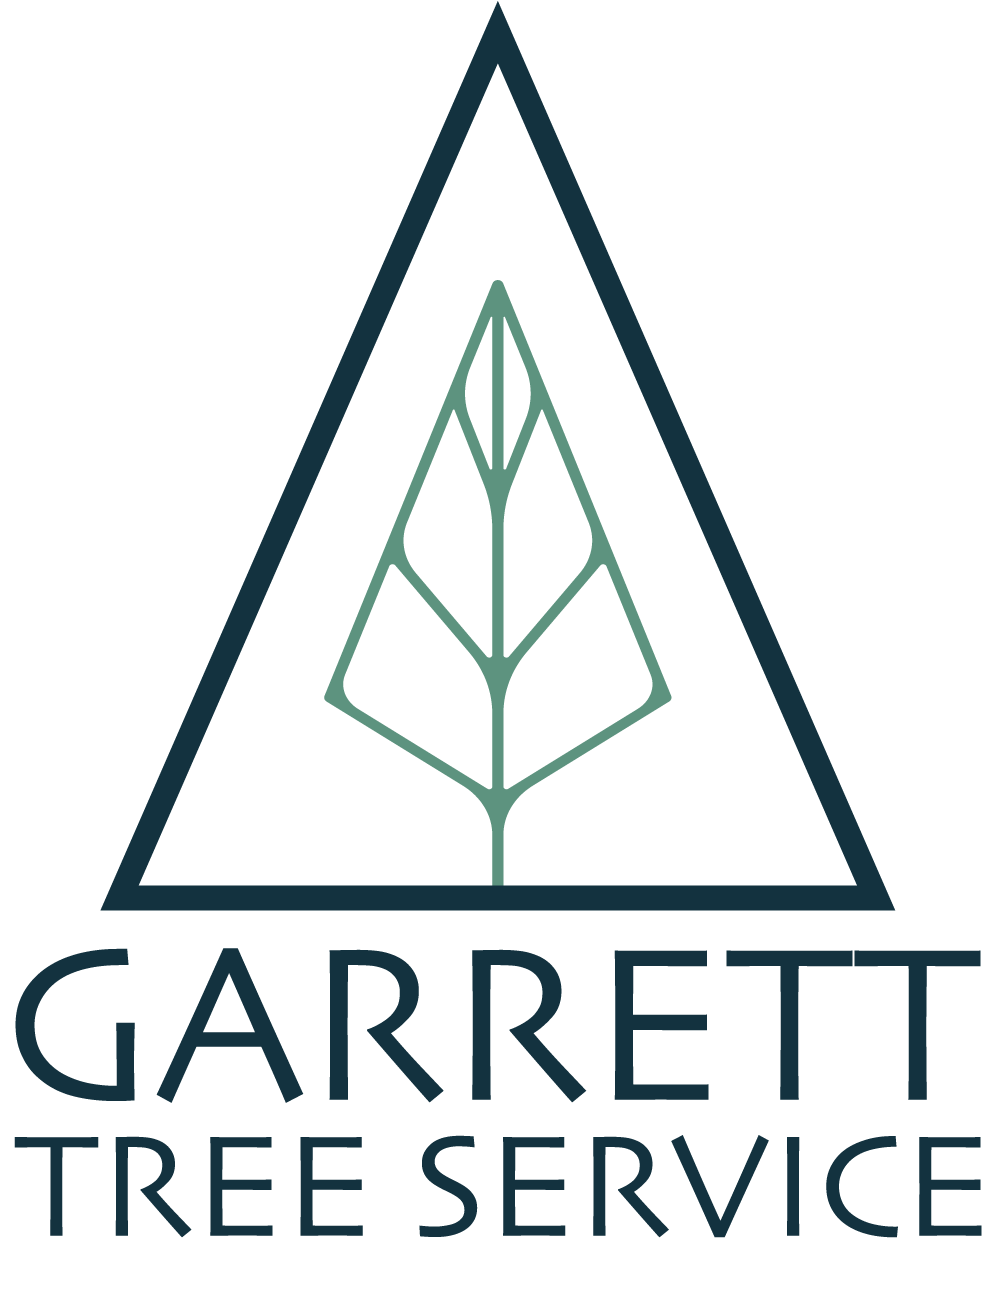 Garrett Tree Service | Tree Removal, Tree Trimming, Fire Mitigation Colorado Springs